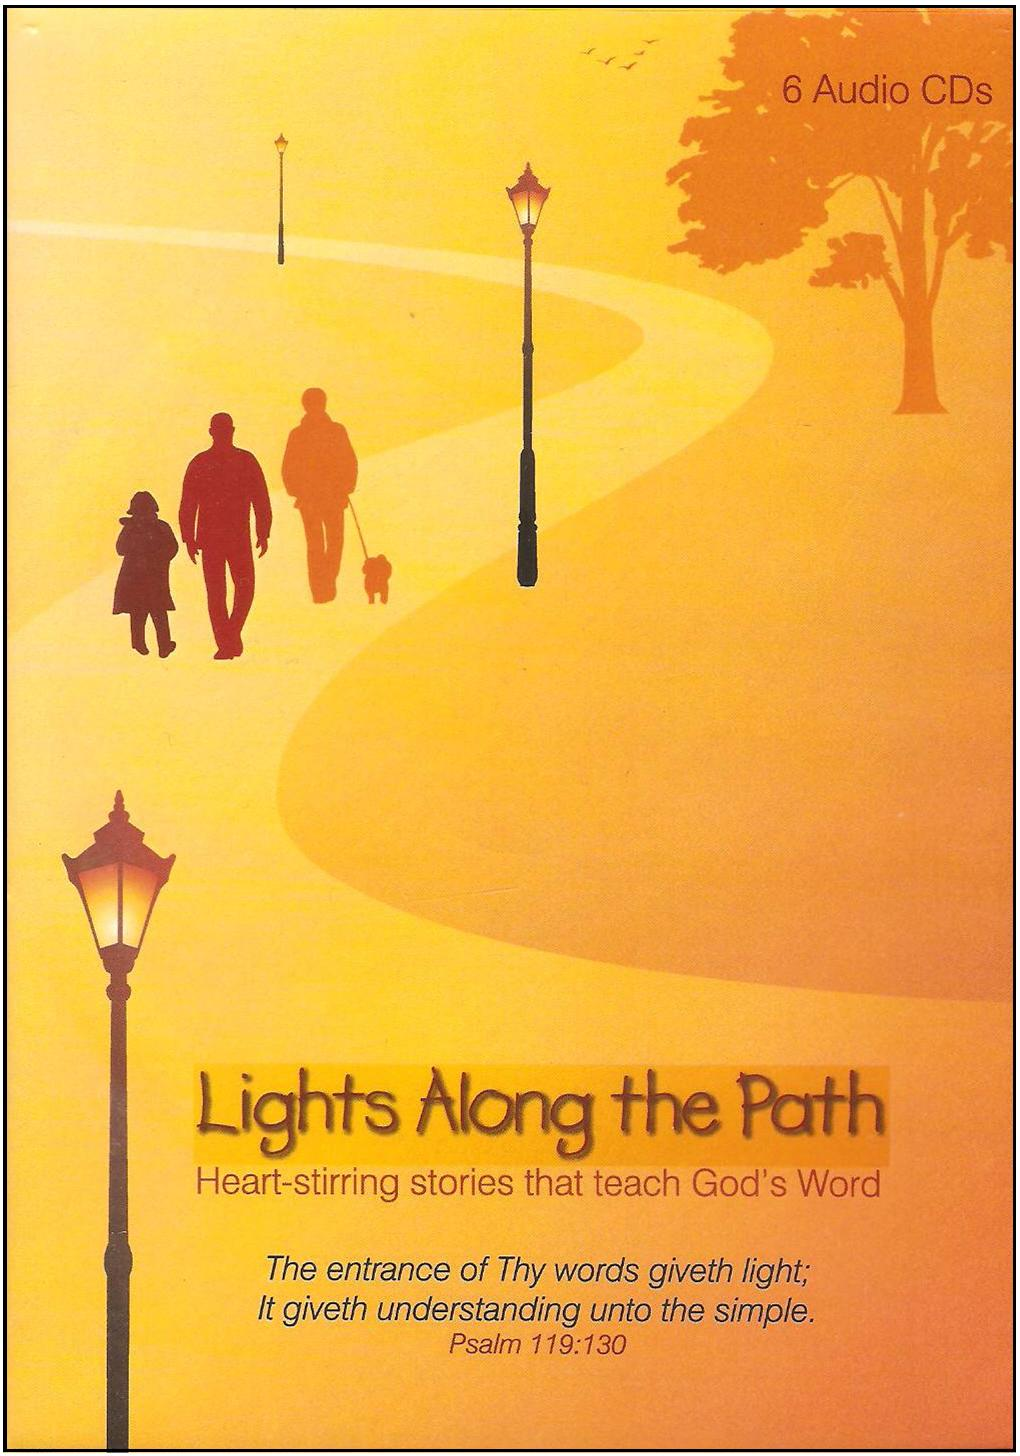 Lights Along the Path - Set of CD Stories